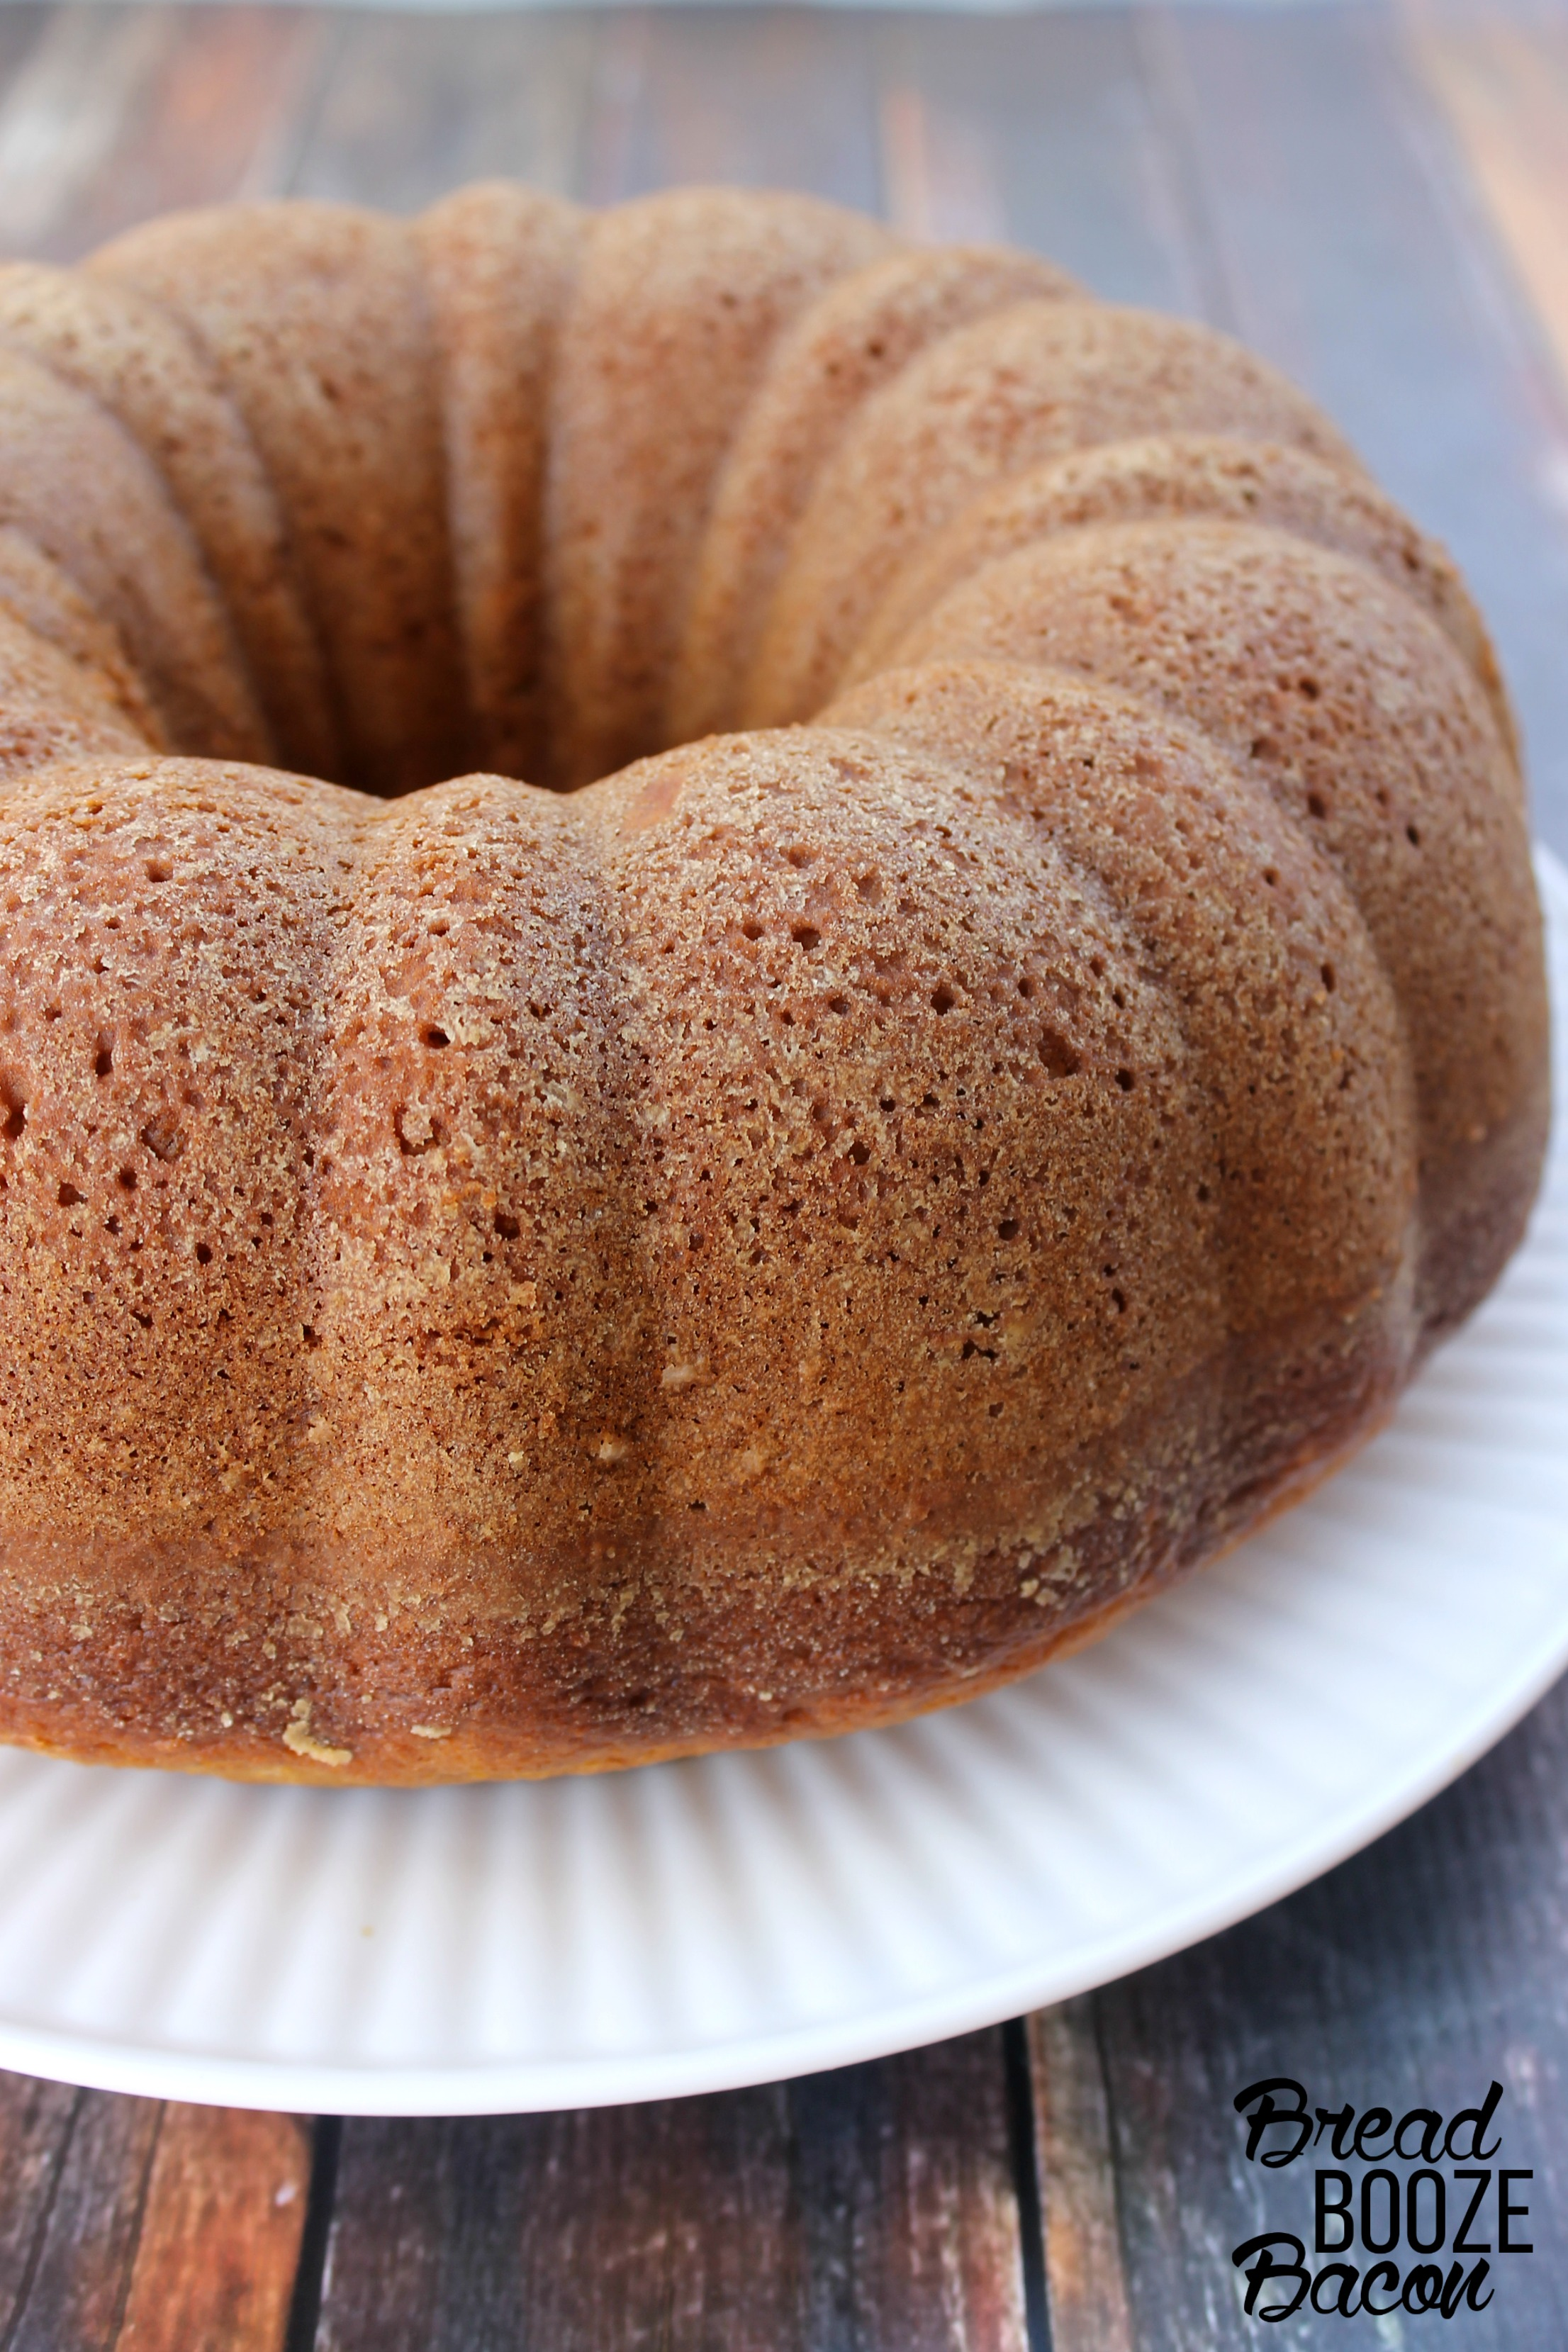 Pumpkin Bread is a crave-able fall bite! Not too sweet and perfect with your morning cup of coffee!